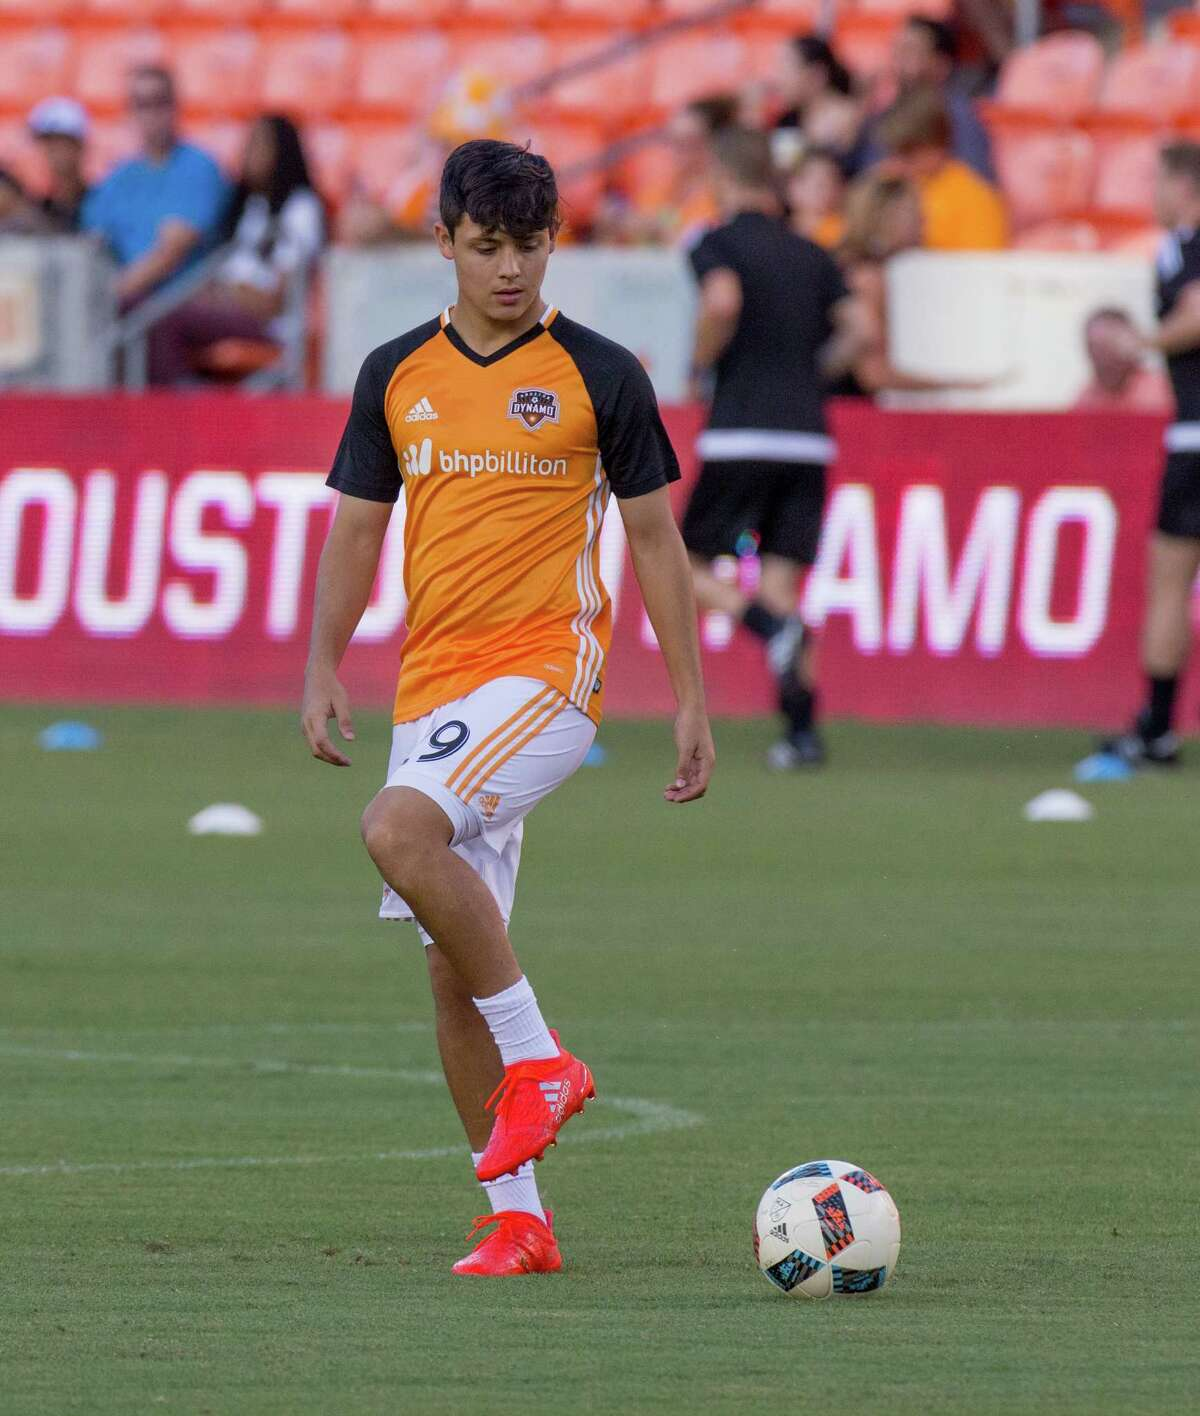 Midfielder Christian Lucatero - $53,250 The Dynamo Academy product is on loan with Rio Grande Valley FC for the second year in a row.